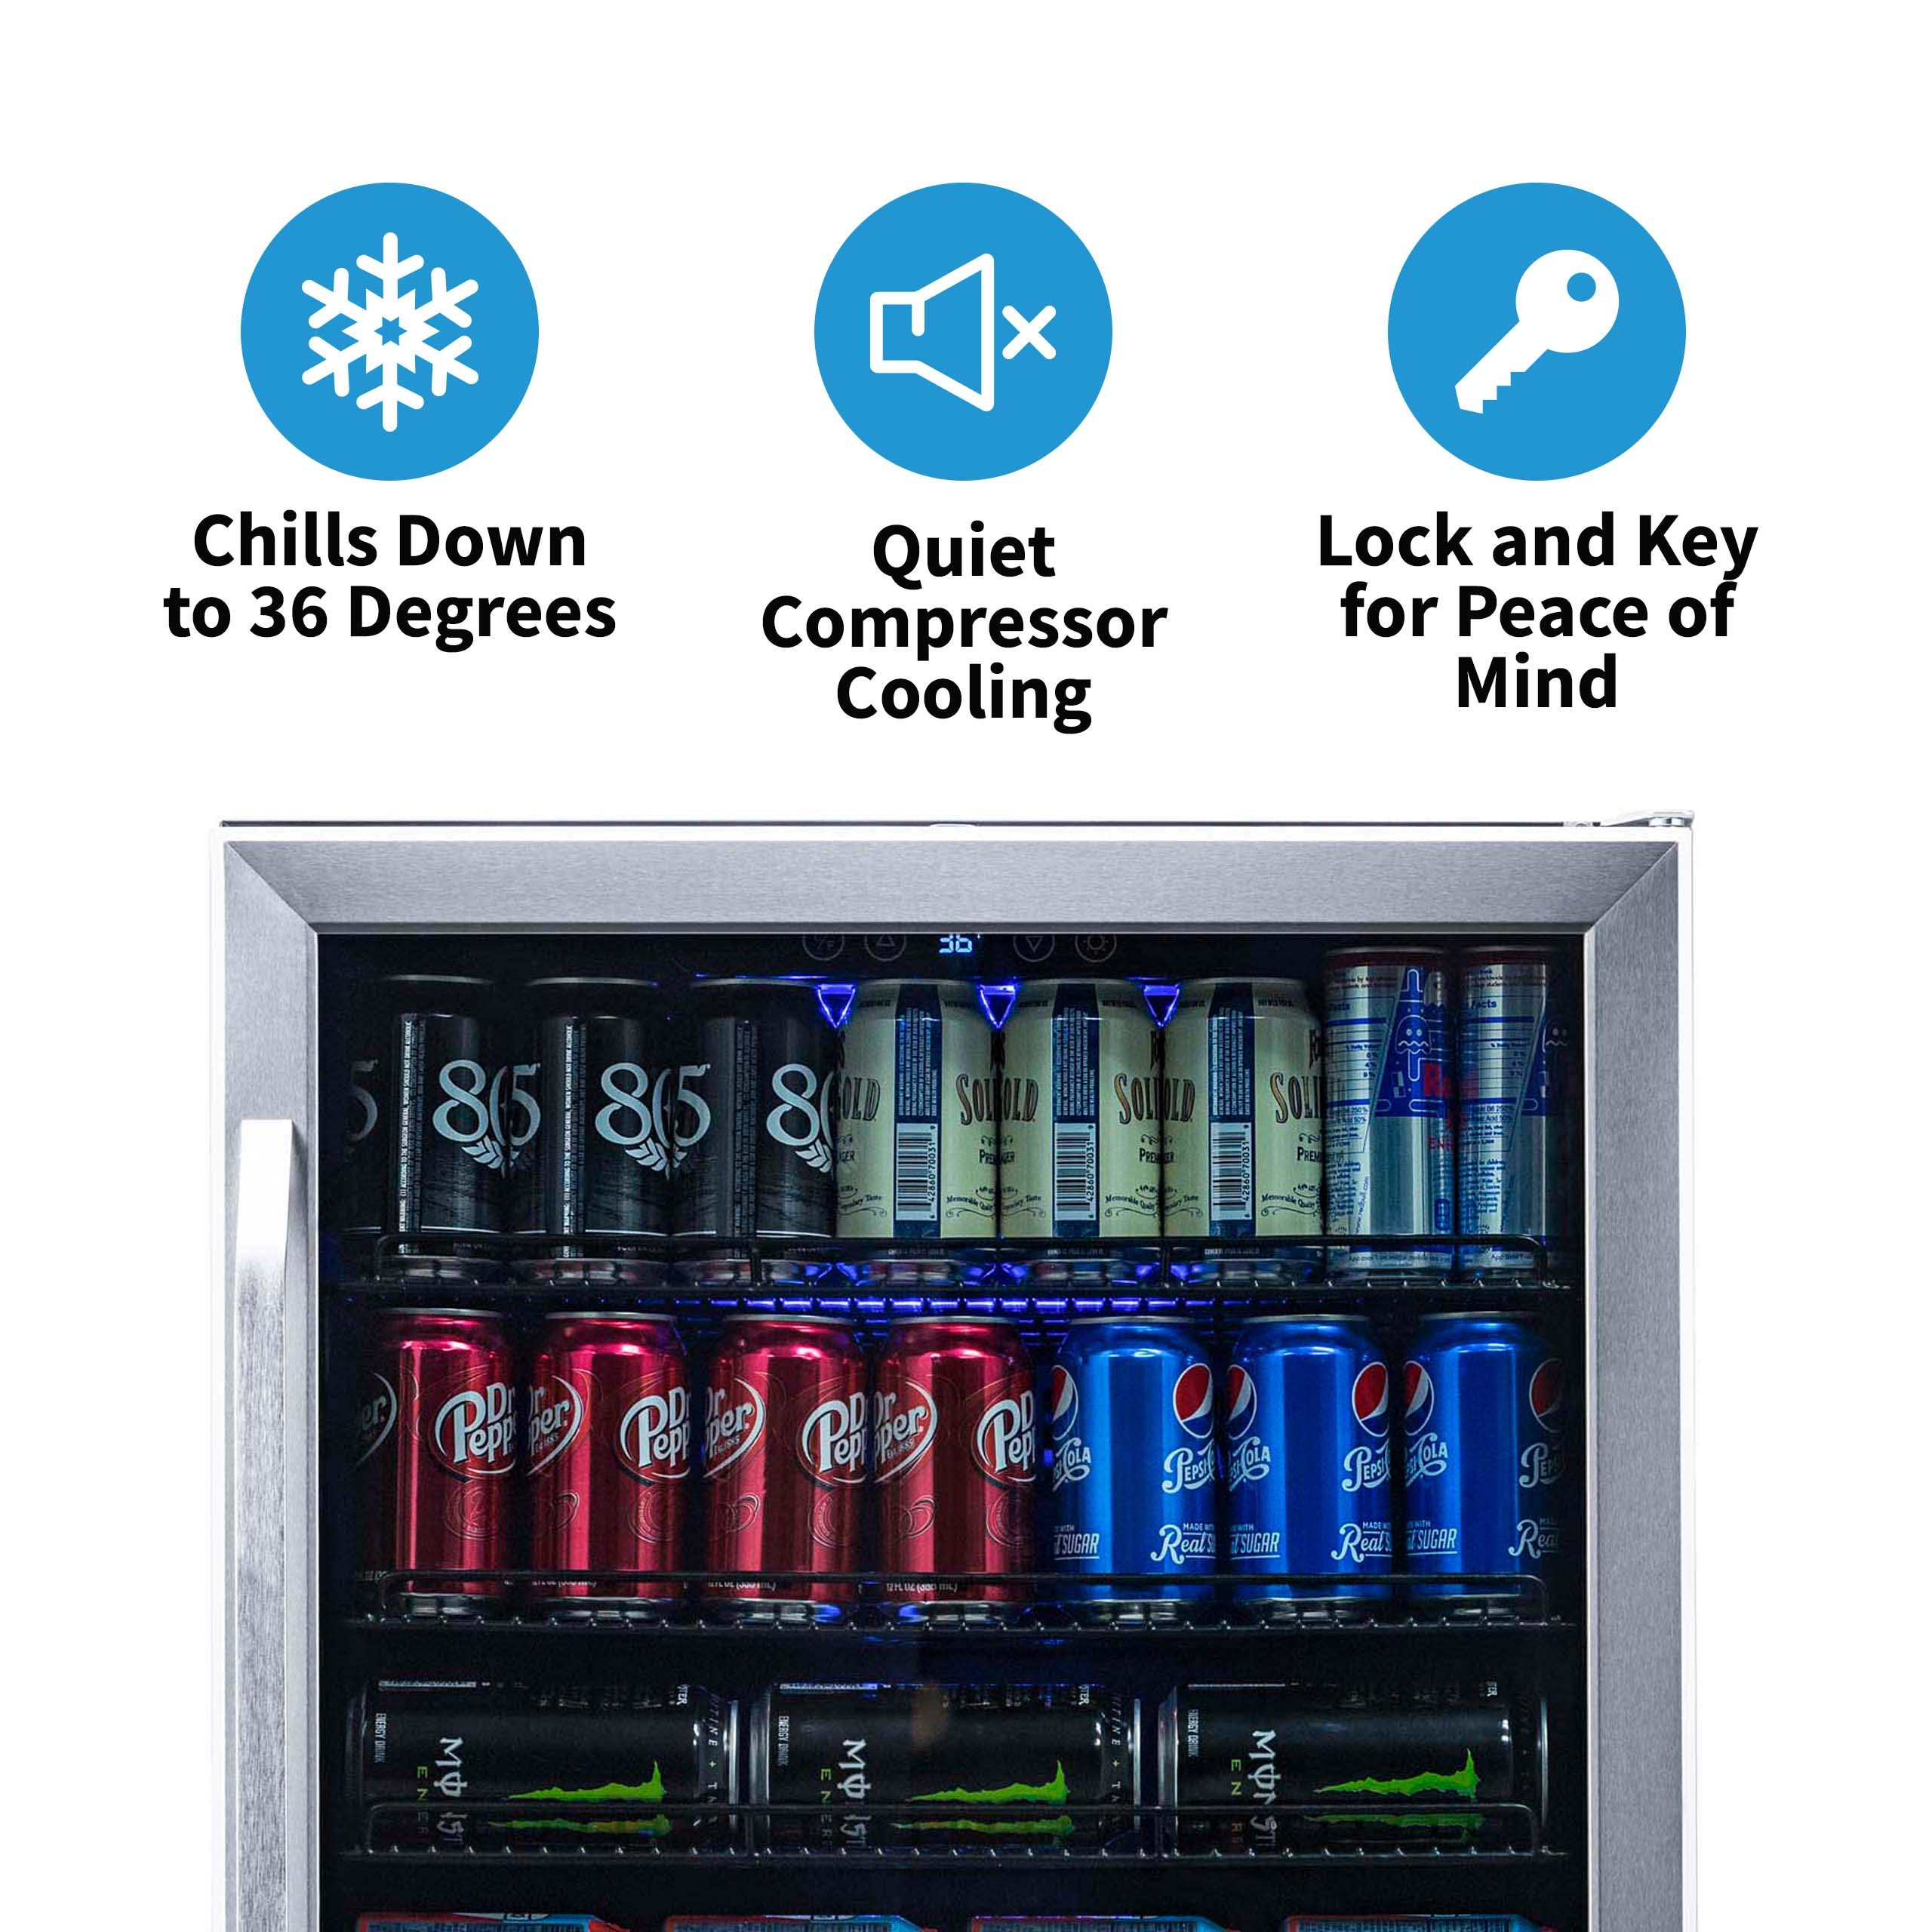 NewAir Built-In Beverage Cooler and Refrigerator, Stainless Steel Mini Fridge with Glass Door,  177 Can Capacity, ABR-1770 by NewAir (Image #4)